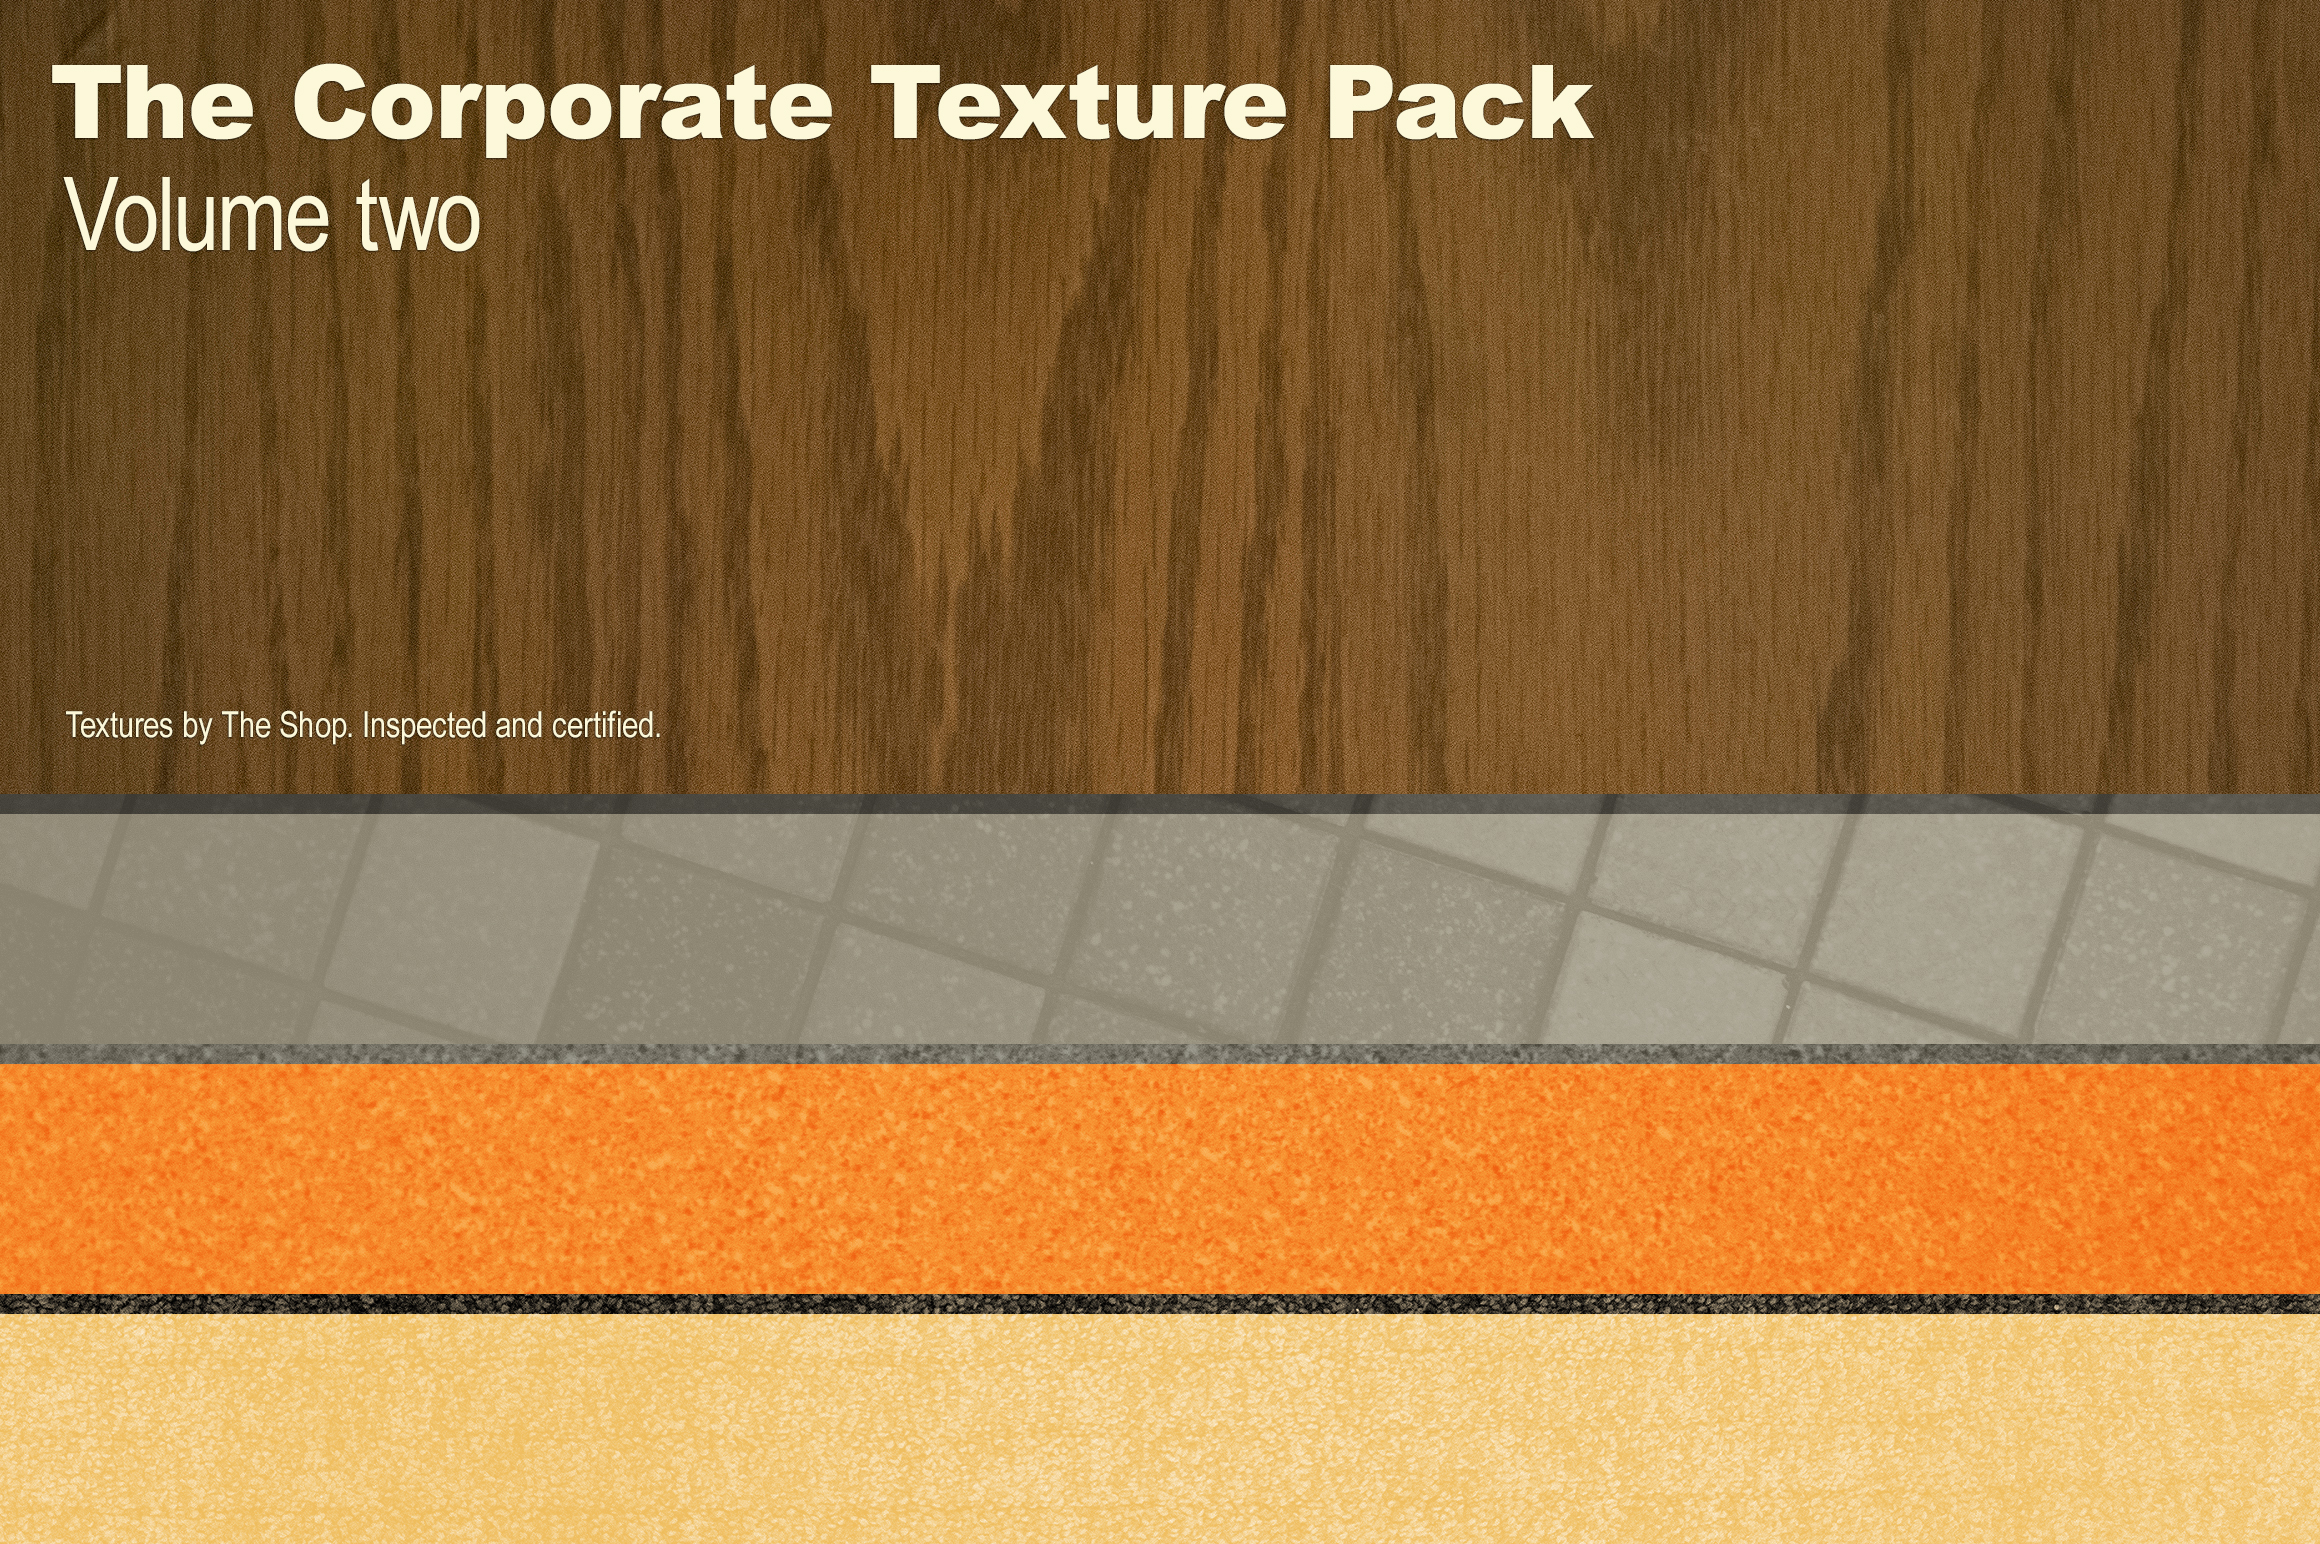 The Corporate Texture Pack Volume 02 Graphic Textures By theshopdesignstudio - Image 1